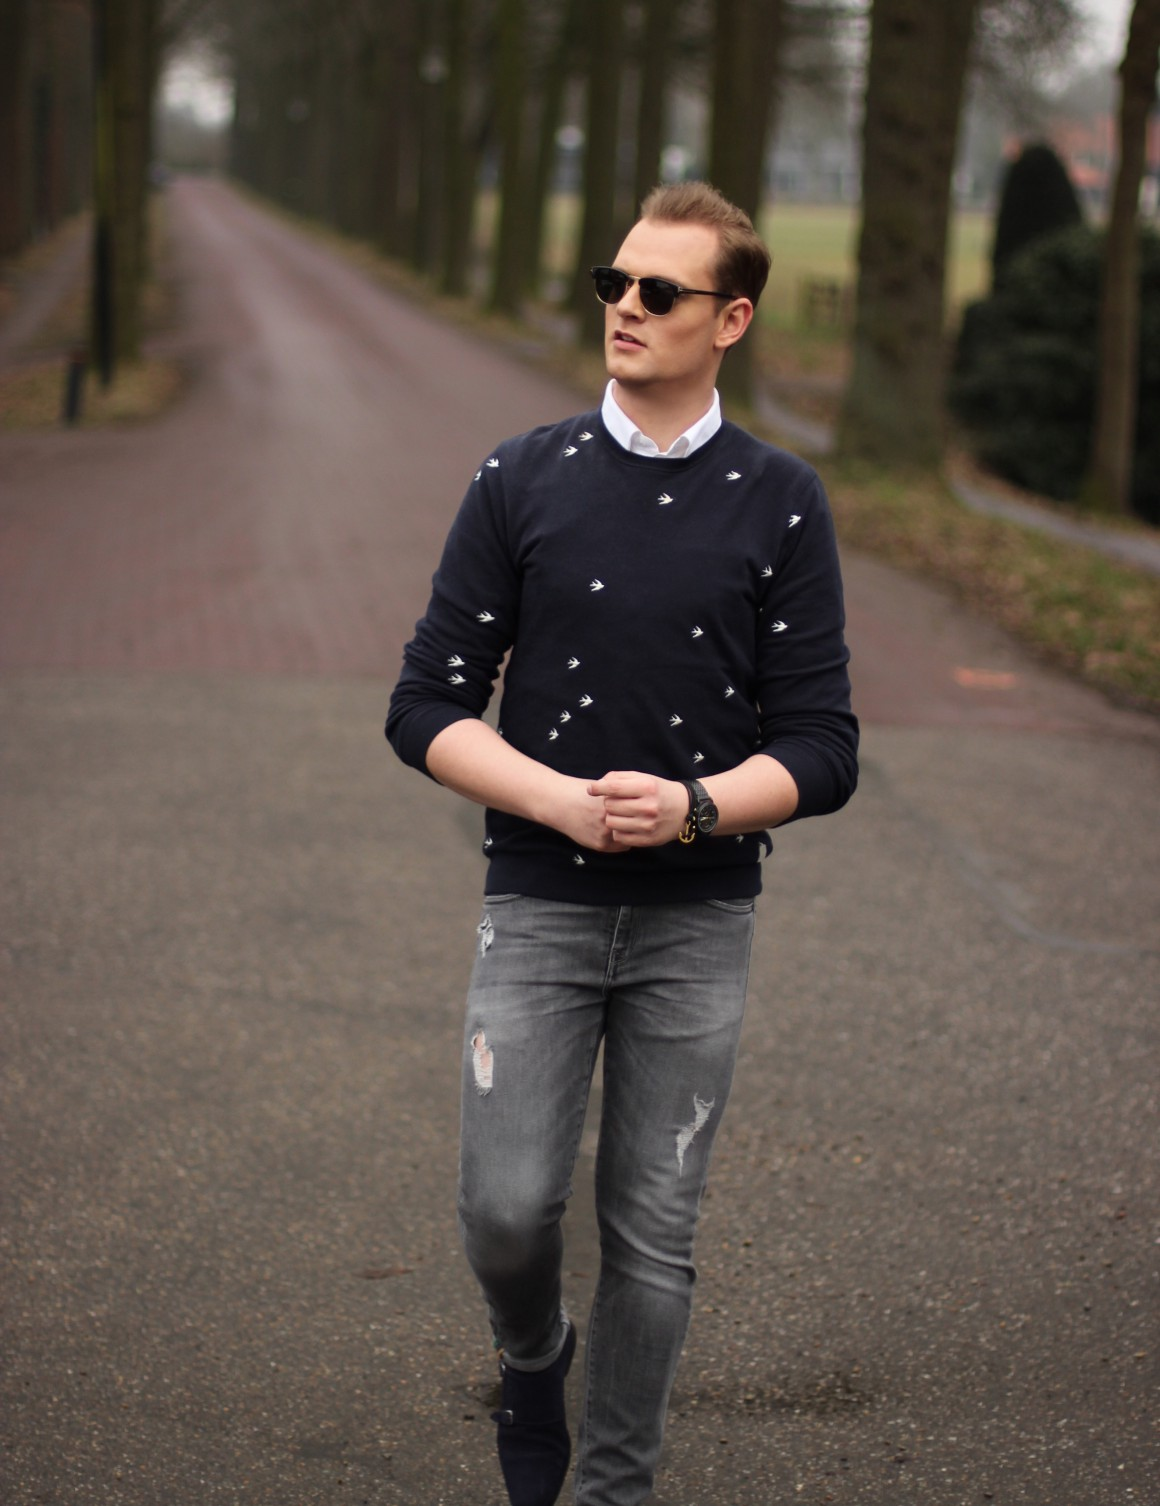 Birds The Sting sweater JustKVN menswear and lifestyle blog